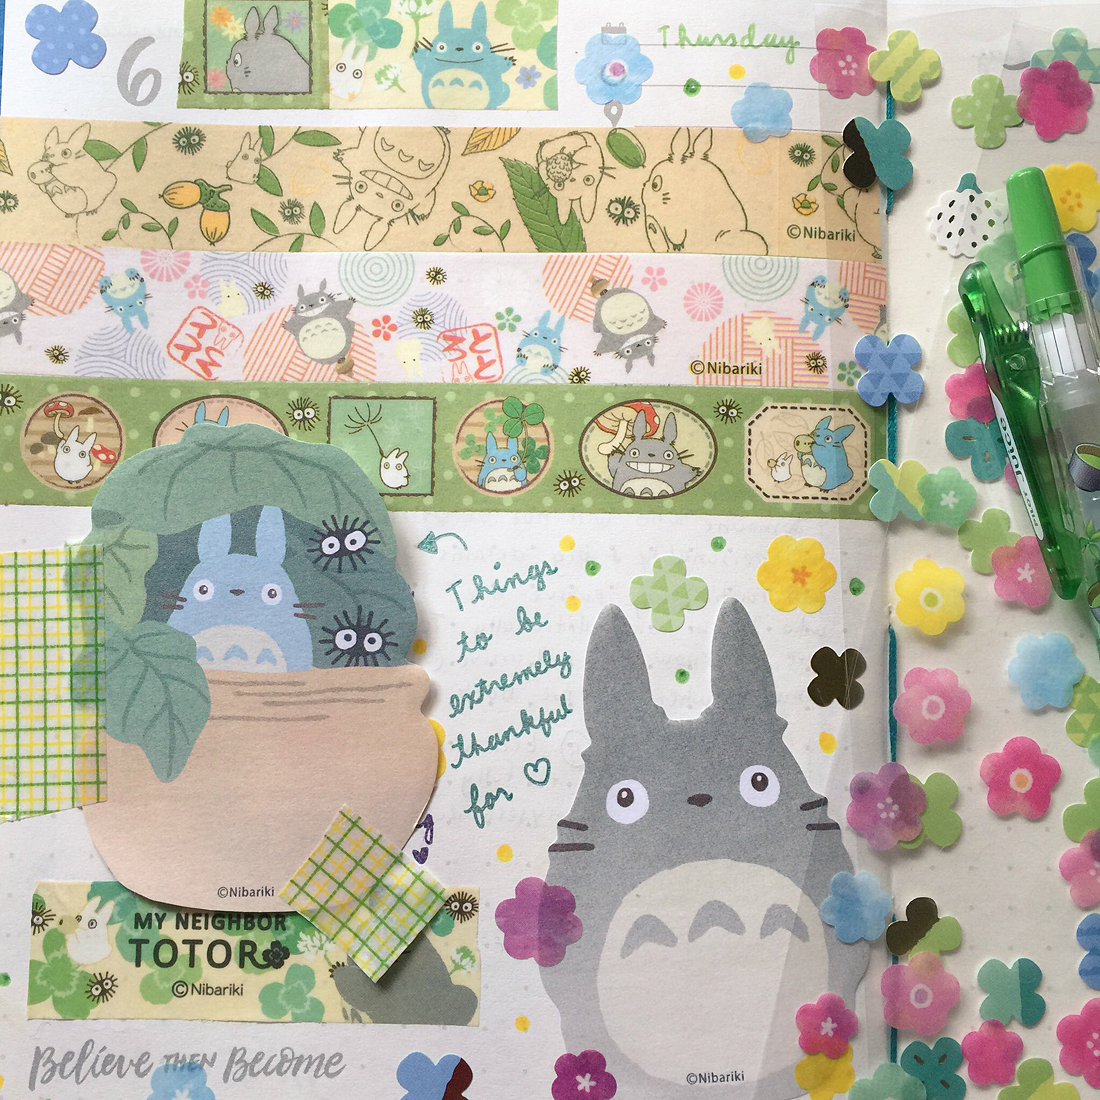 abc-daily-journal-totoro